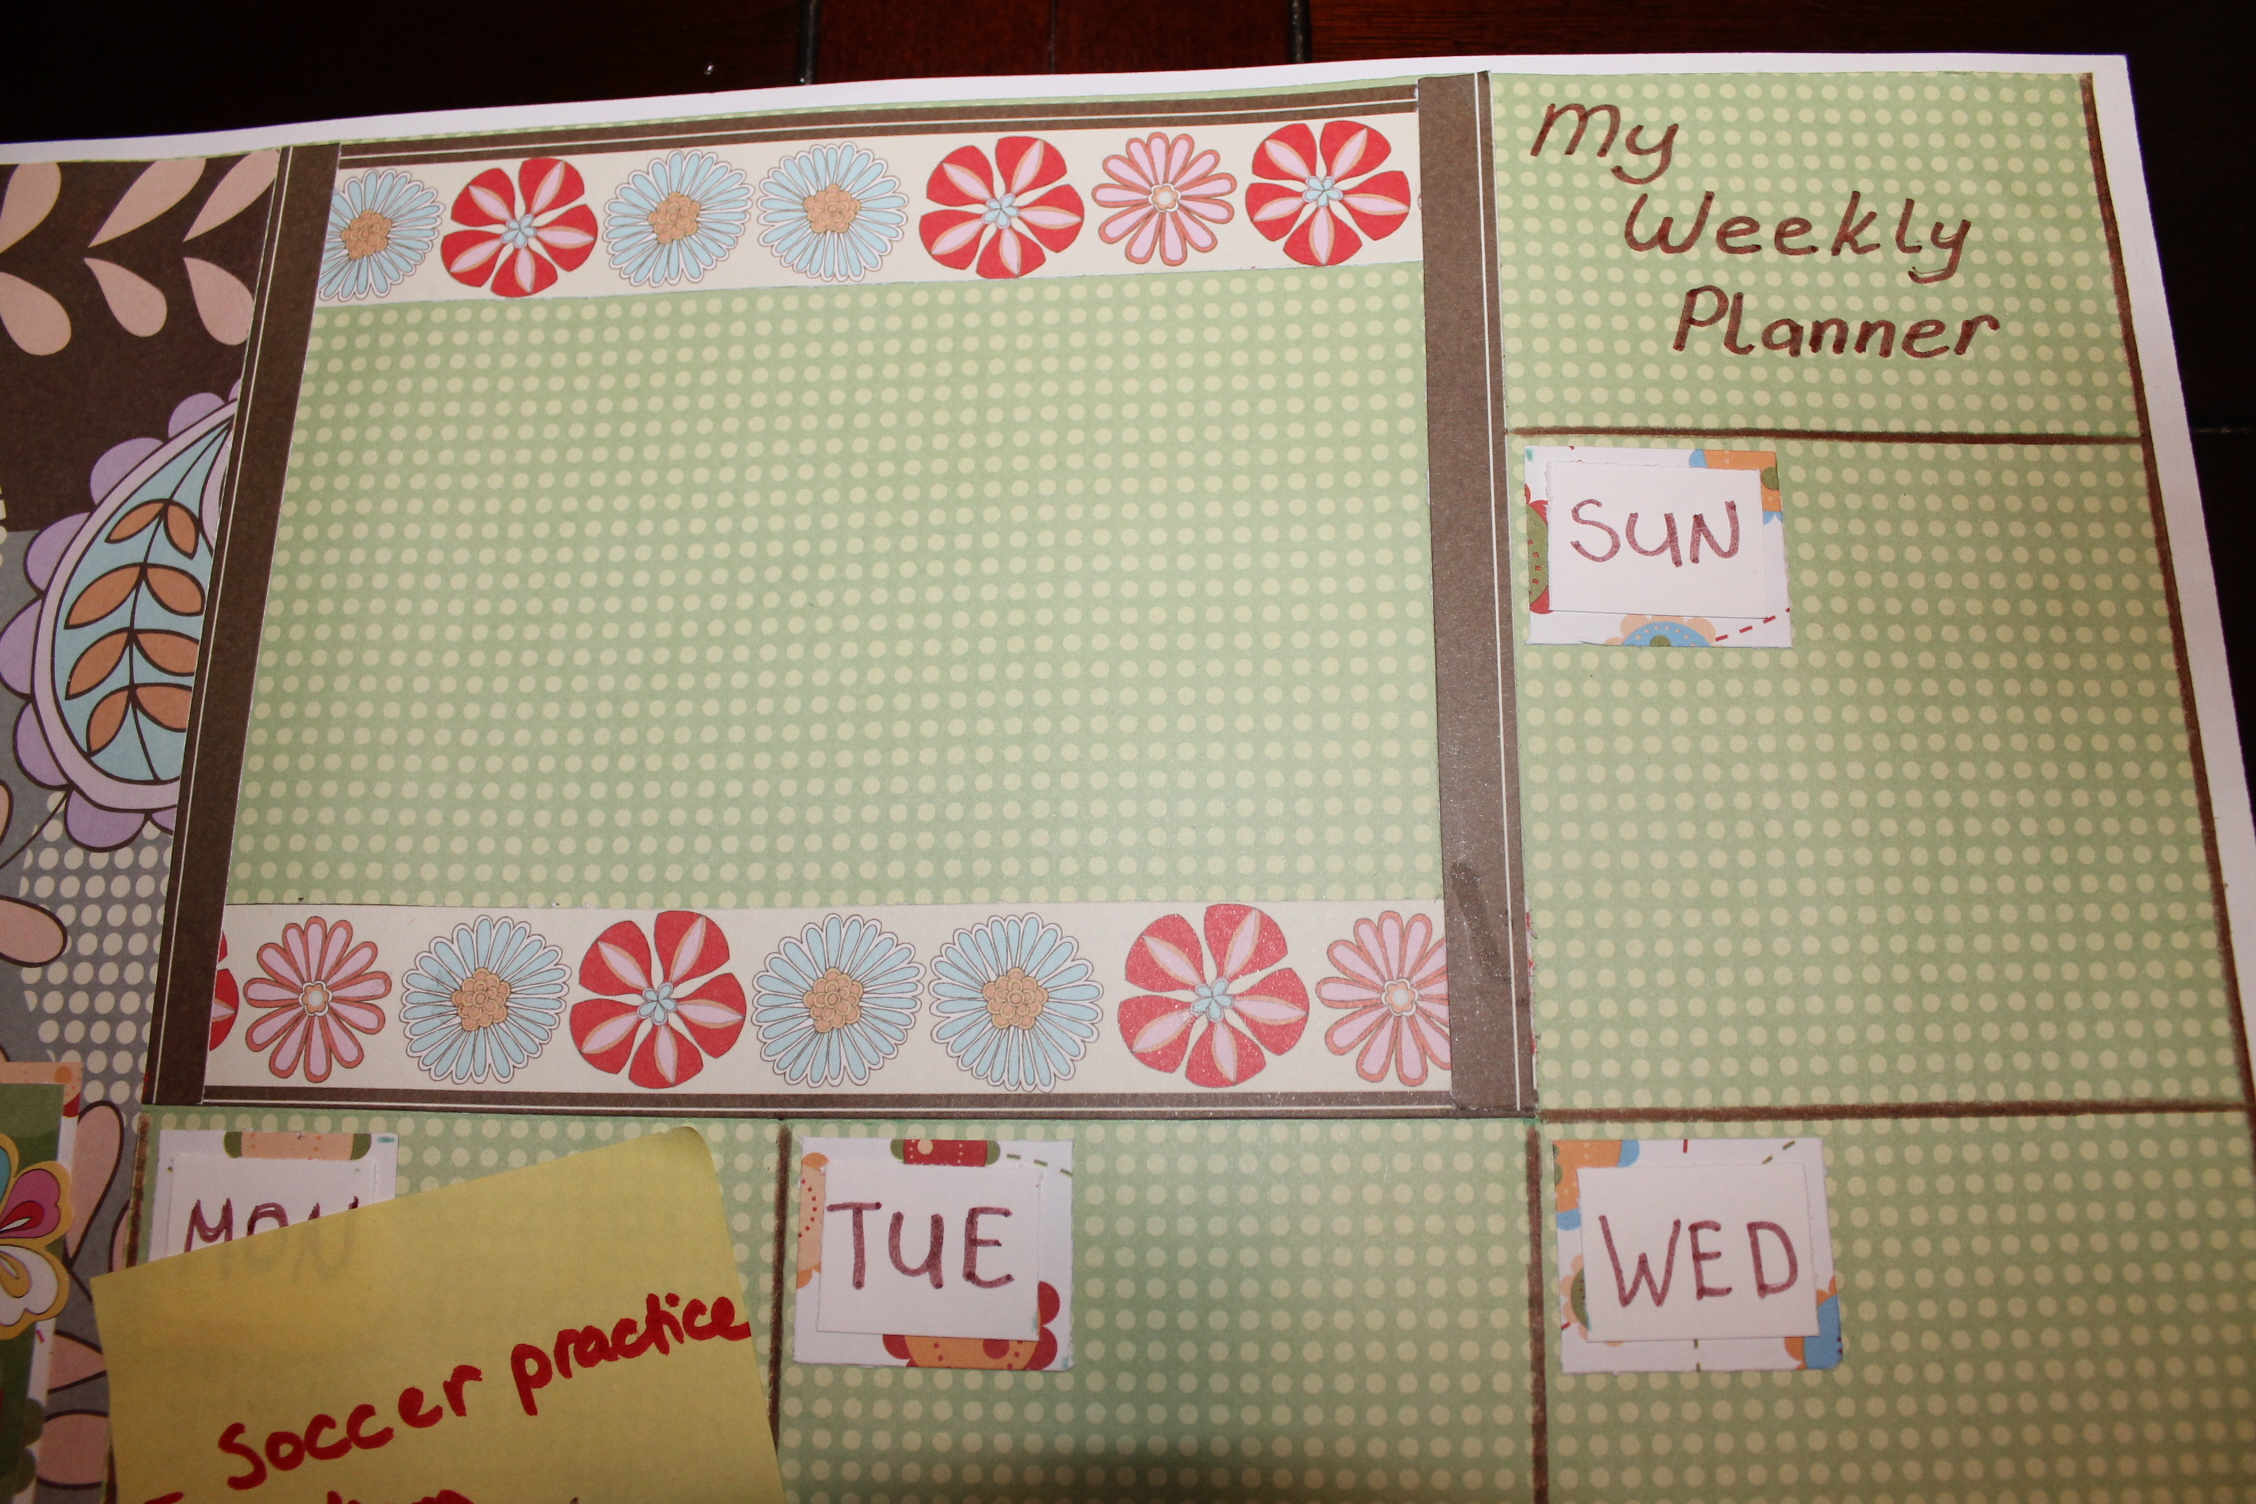 Sticky notes crafts: Make your own weekly planner and more